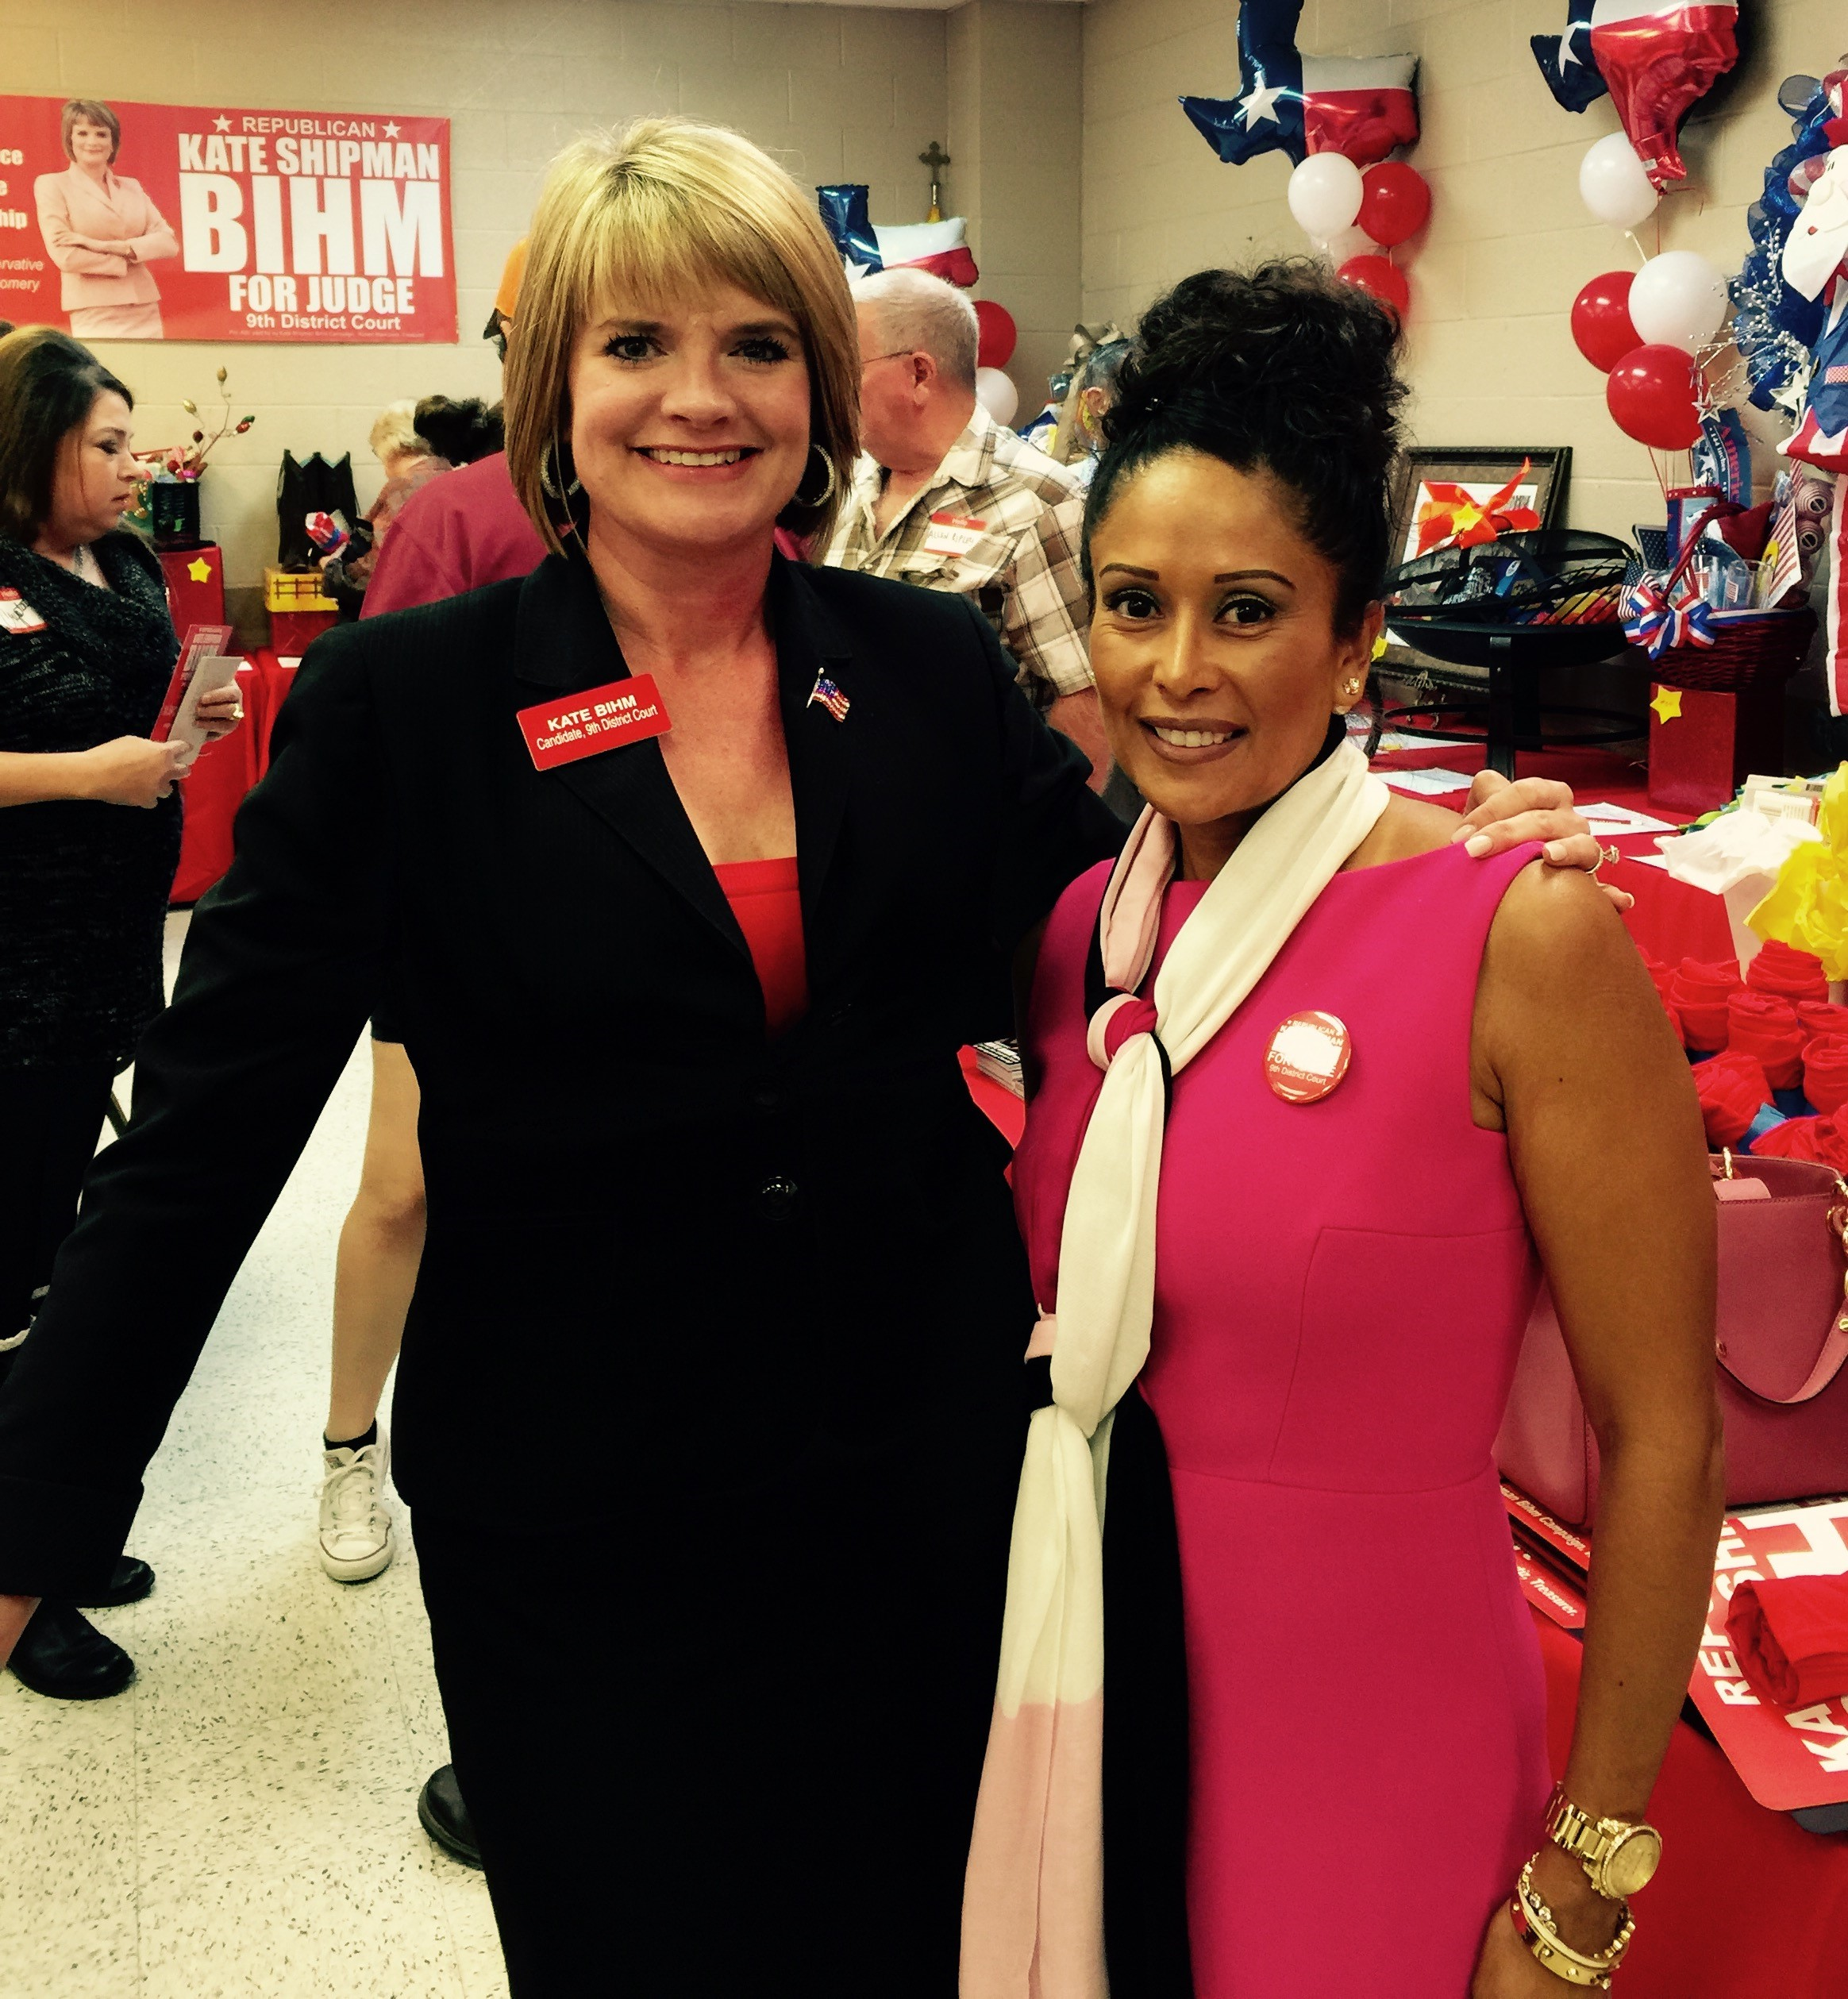 Melissa Rascon & Kate Shipman Bihm at her Campaign Fundraiser for Judge